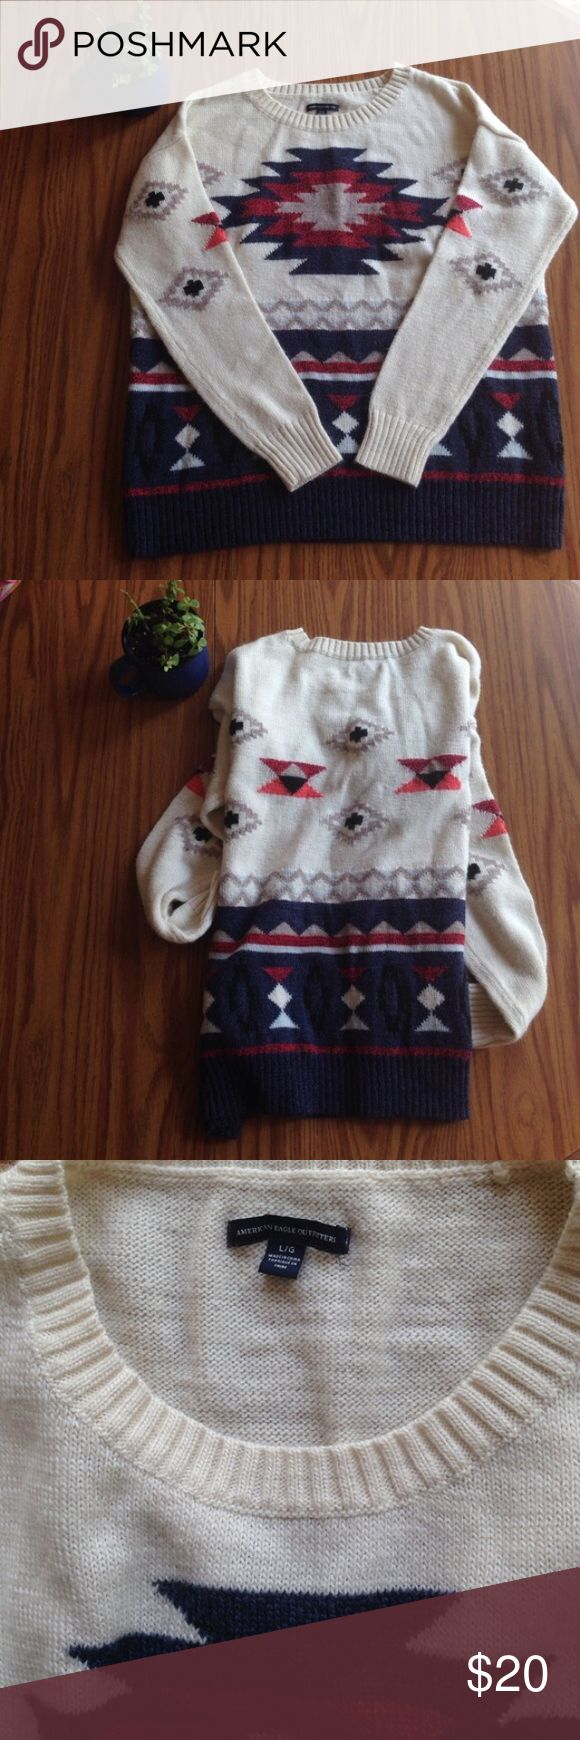 American Eagle Aztec Sweater Gentle use. Super comfy. Aztec patterned. American Eagle Outfitters Sweaters Crew & Scoop Necks